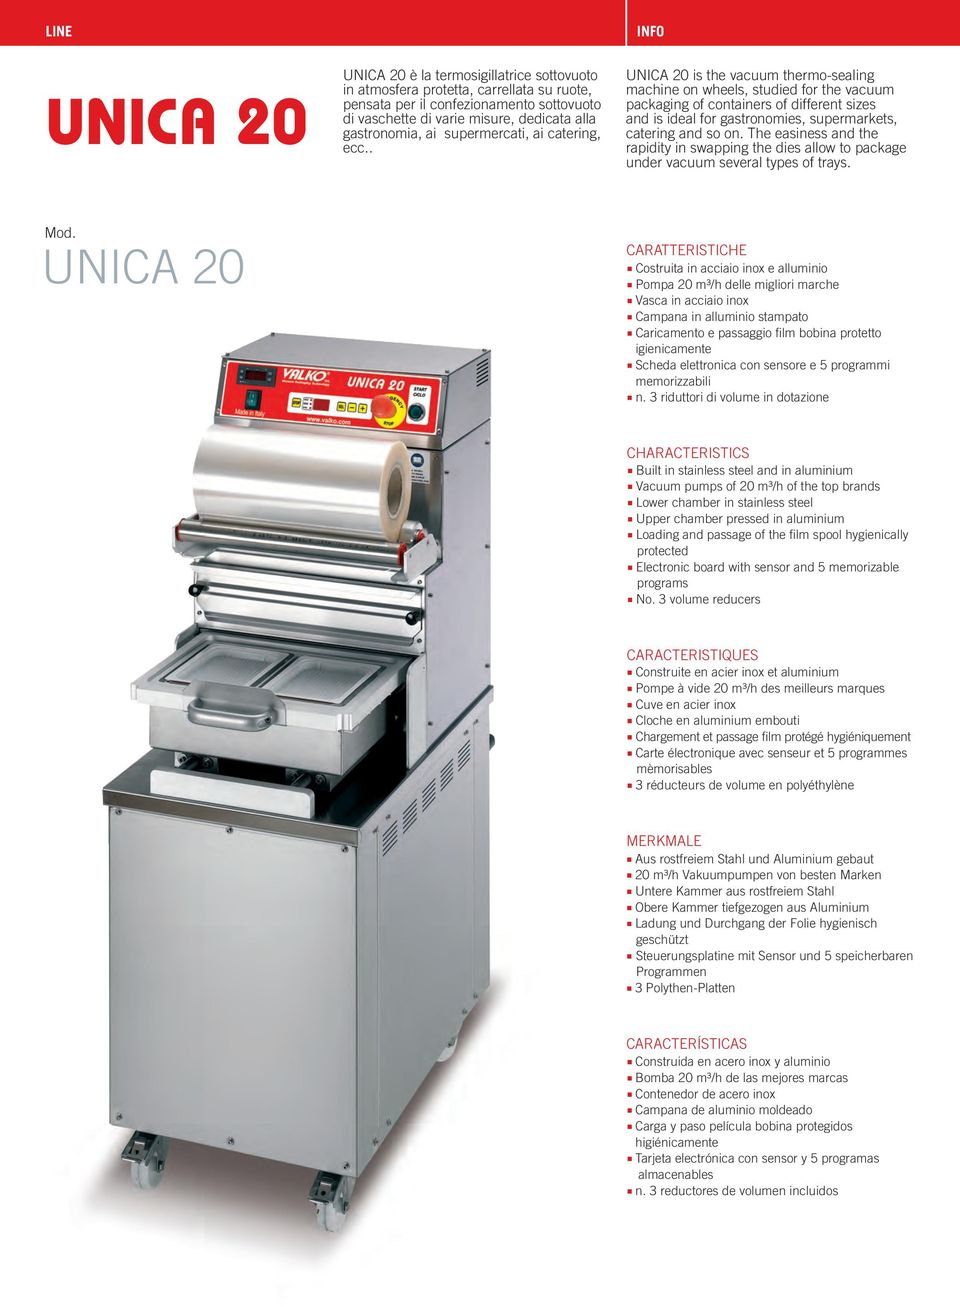 . UNICA 20 is the vacuum thermo-sealing machine on wheels, studied for the vacuum packaging of containers of different sizes and is ideal for gastronomies, supermarkets, catering and so on.